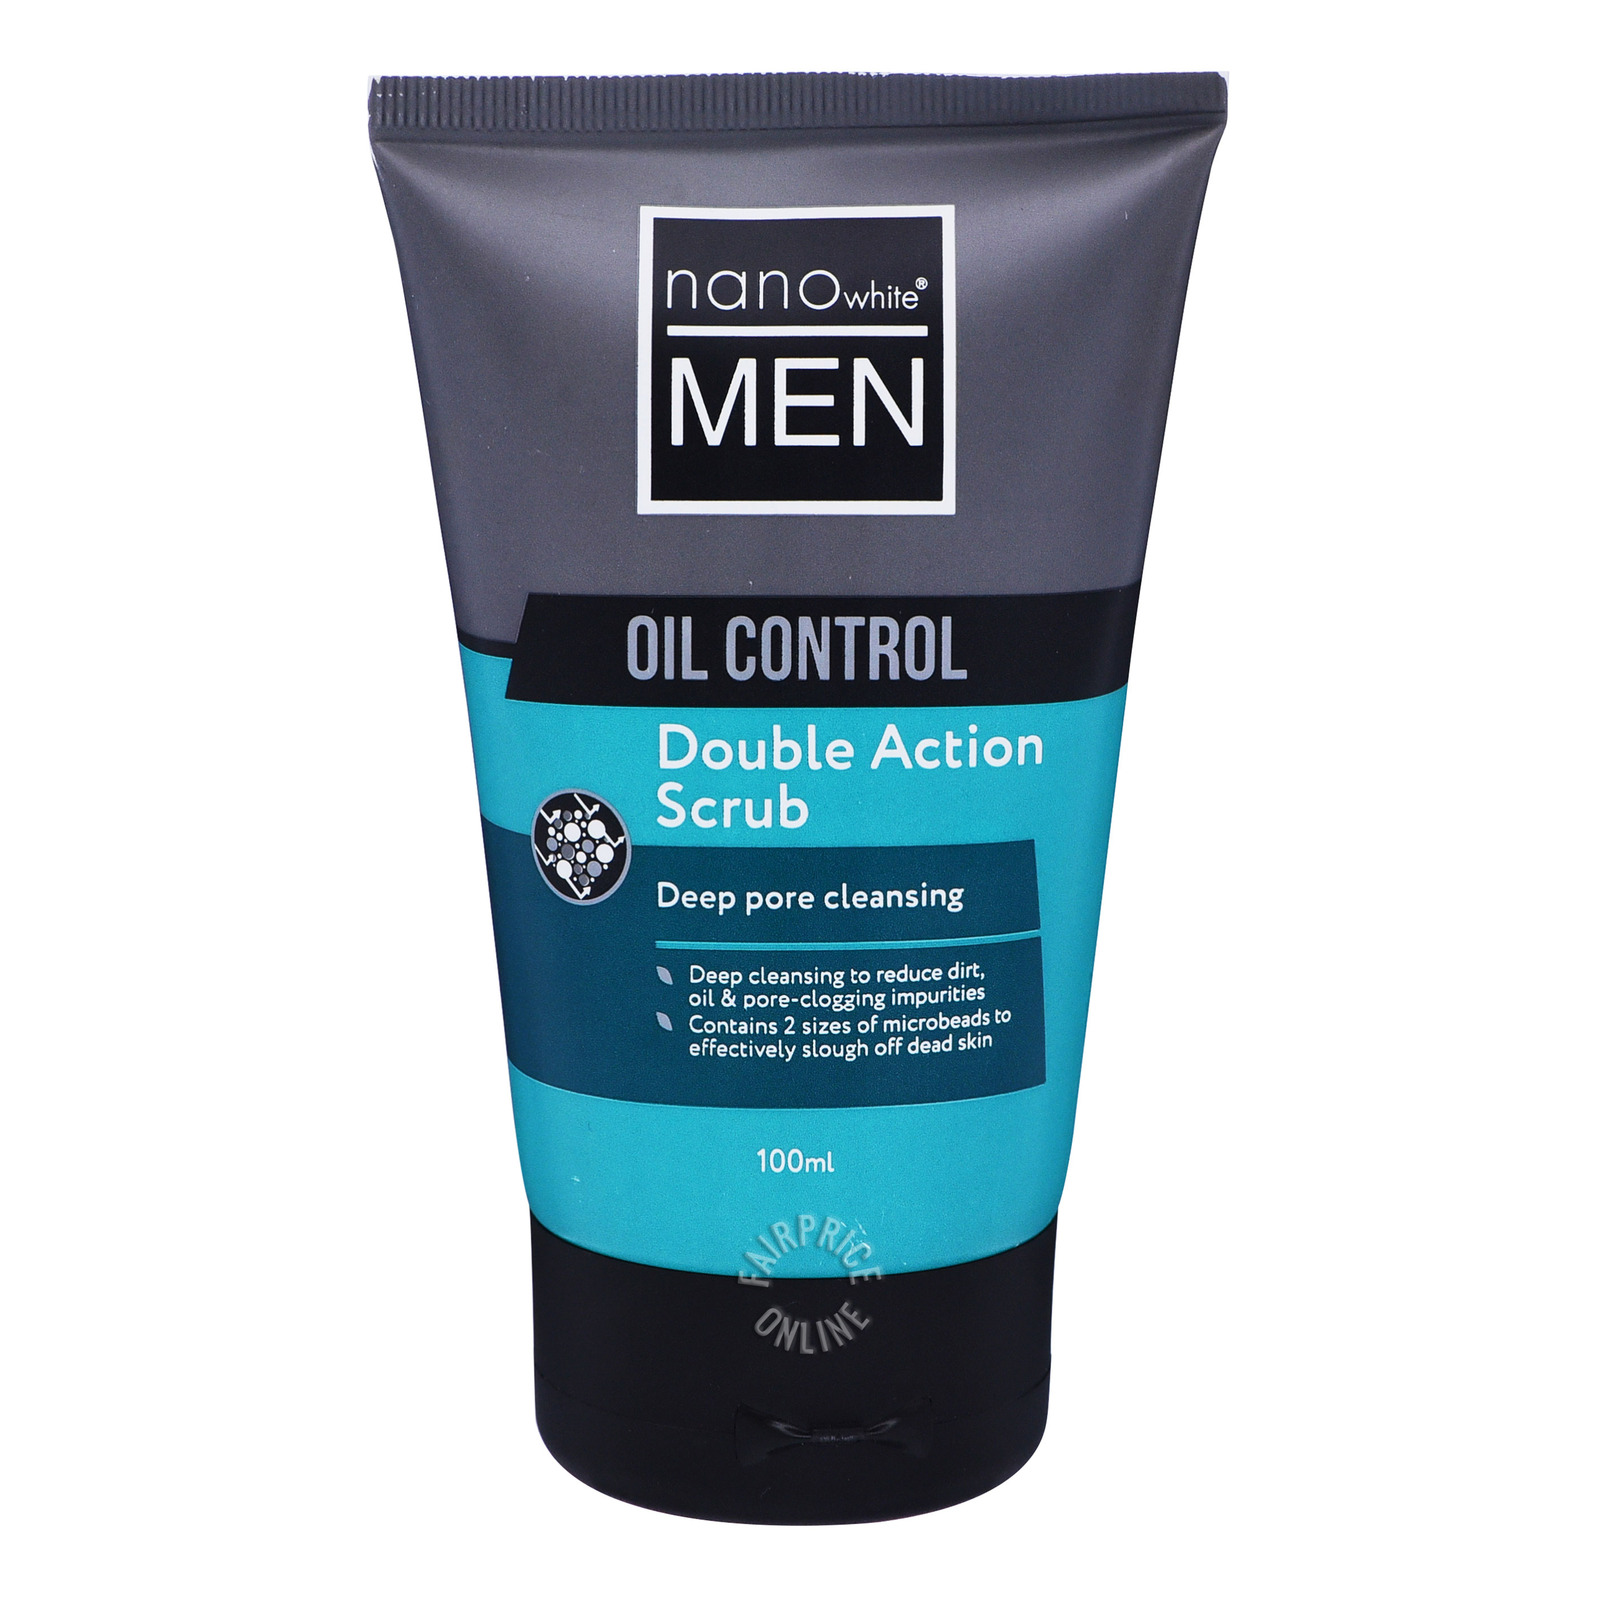 Nano White Men Oil Control Face Cleanser - Oil Control